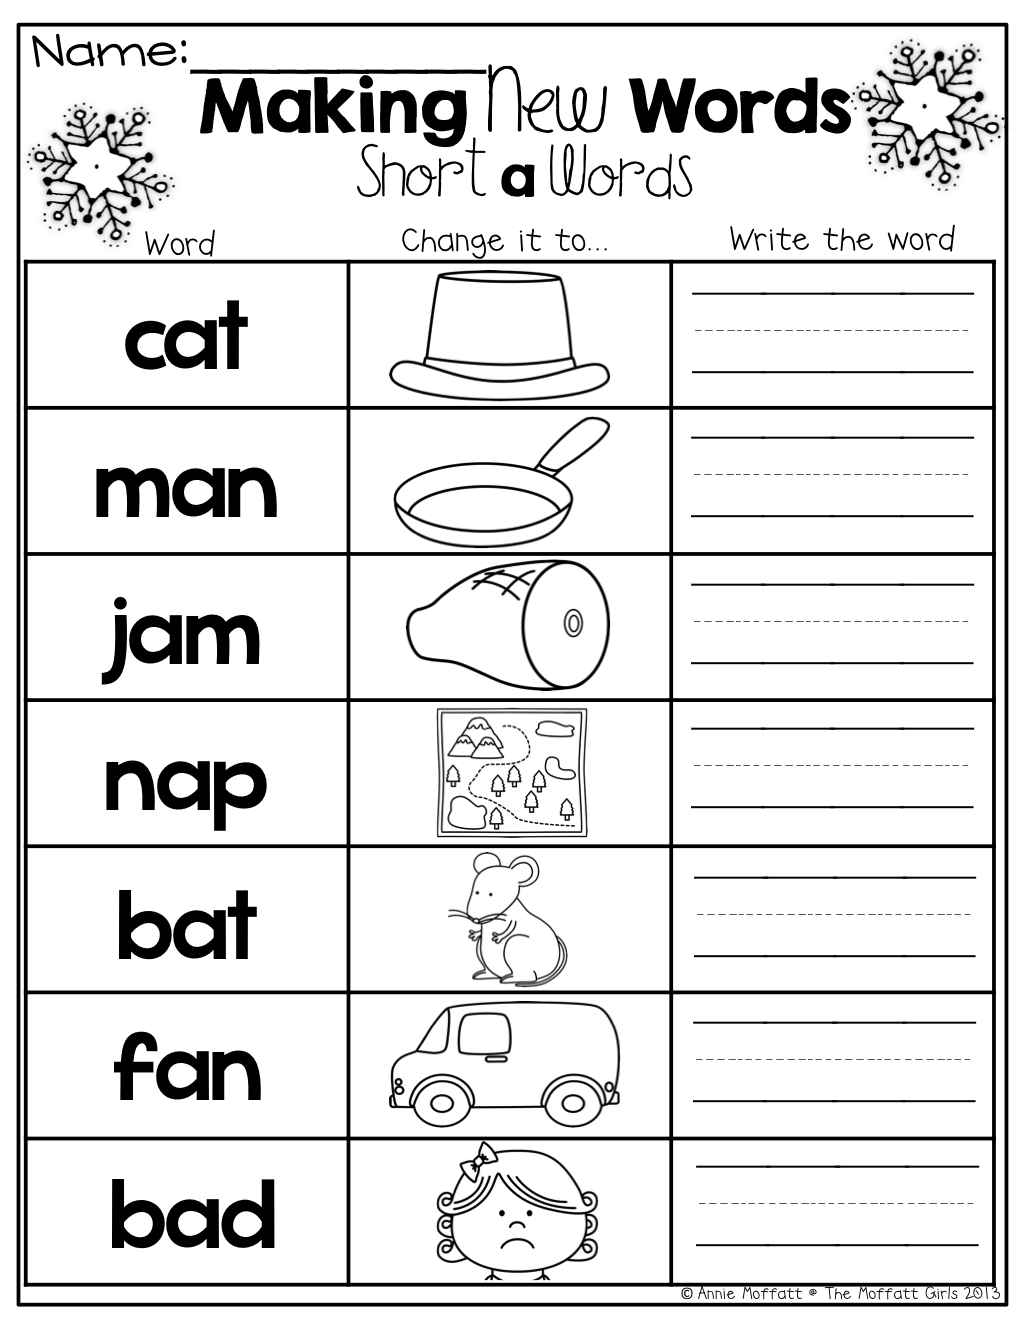 Workbooks three letter words worksheets kindergarten : Make new words by changing the beginning sound! | Skool Dayz ...